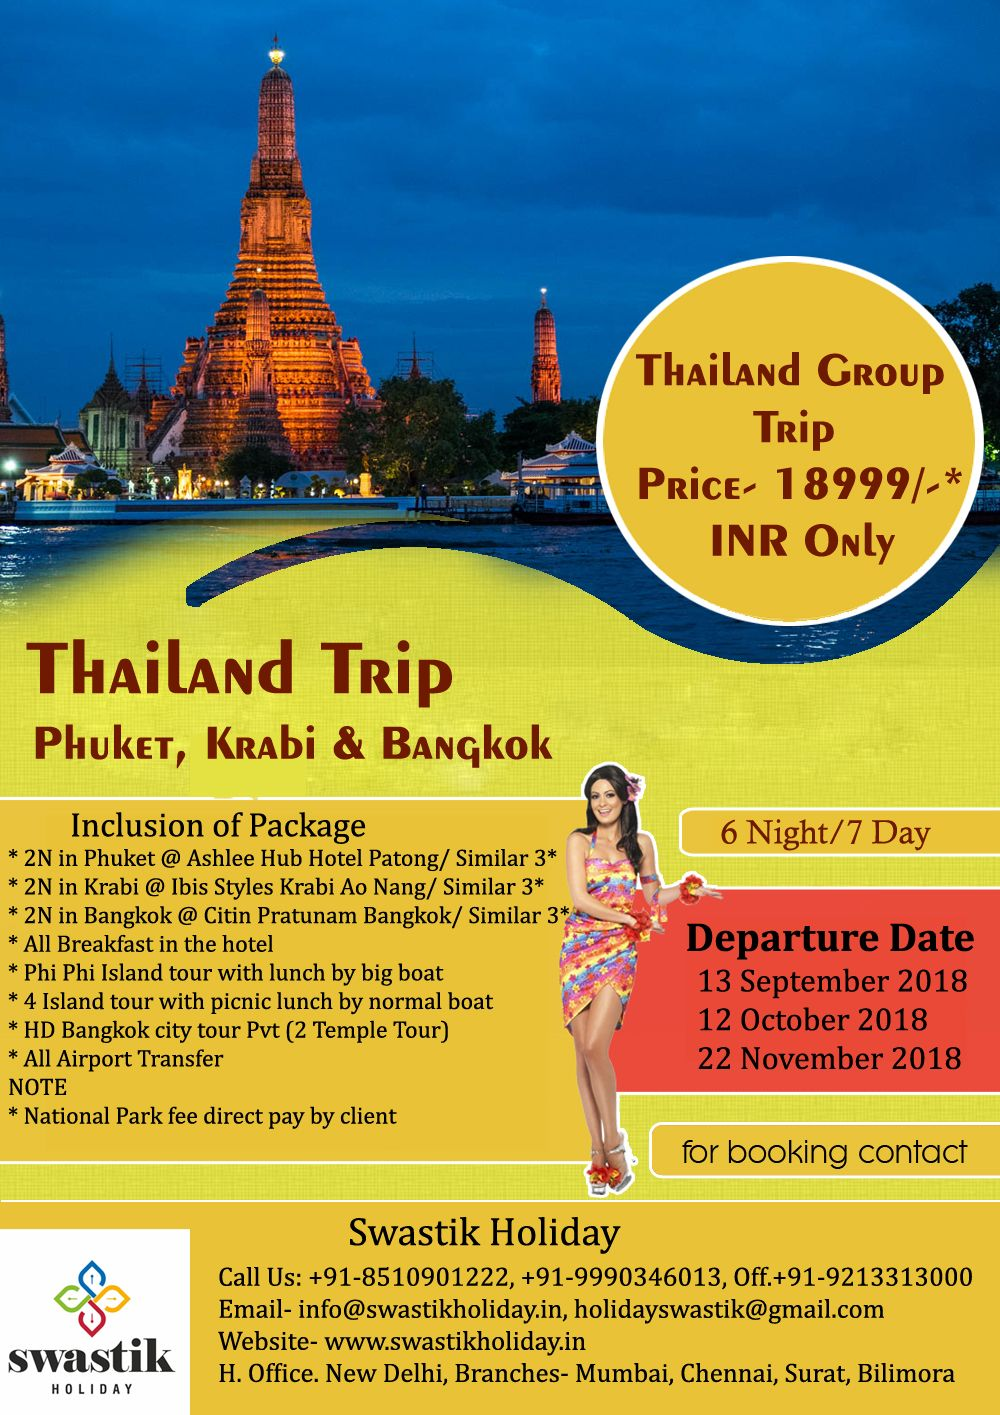 Thailand Group Trip Destination Phuket Krabi And Bangkok Cost Of Package 18999 Inr Only For Booking Contact Tour Packages Thailand Tours Bangkok Travel